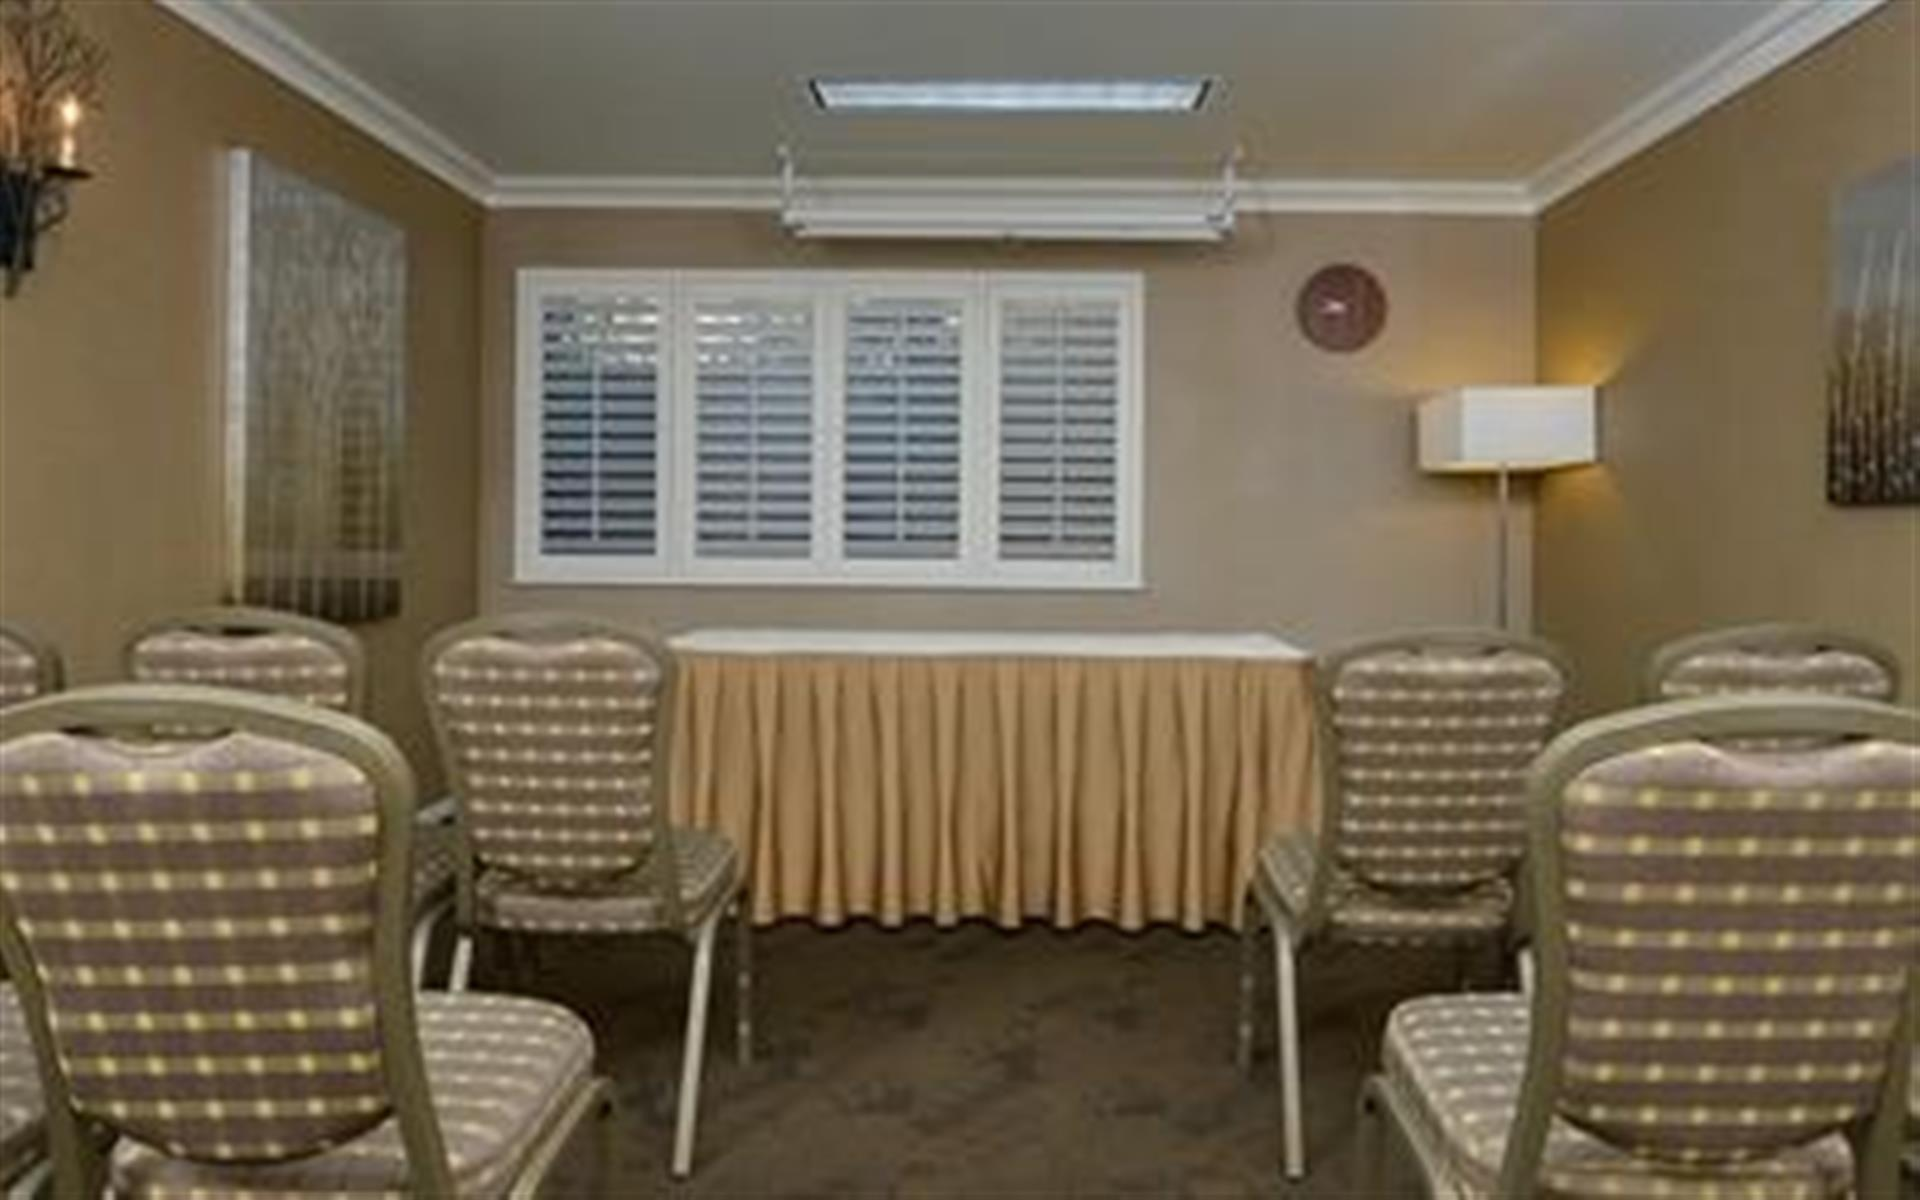 Best Western PLUS Novato Oaks Inn - The Mariposa Room